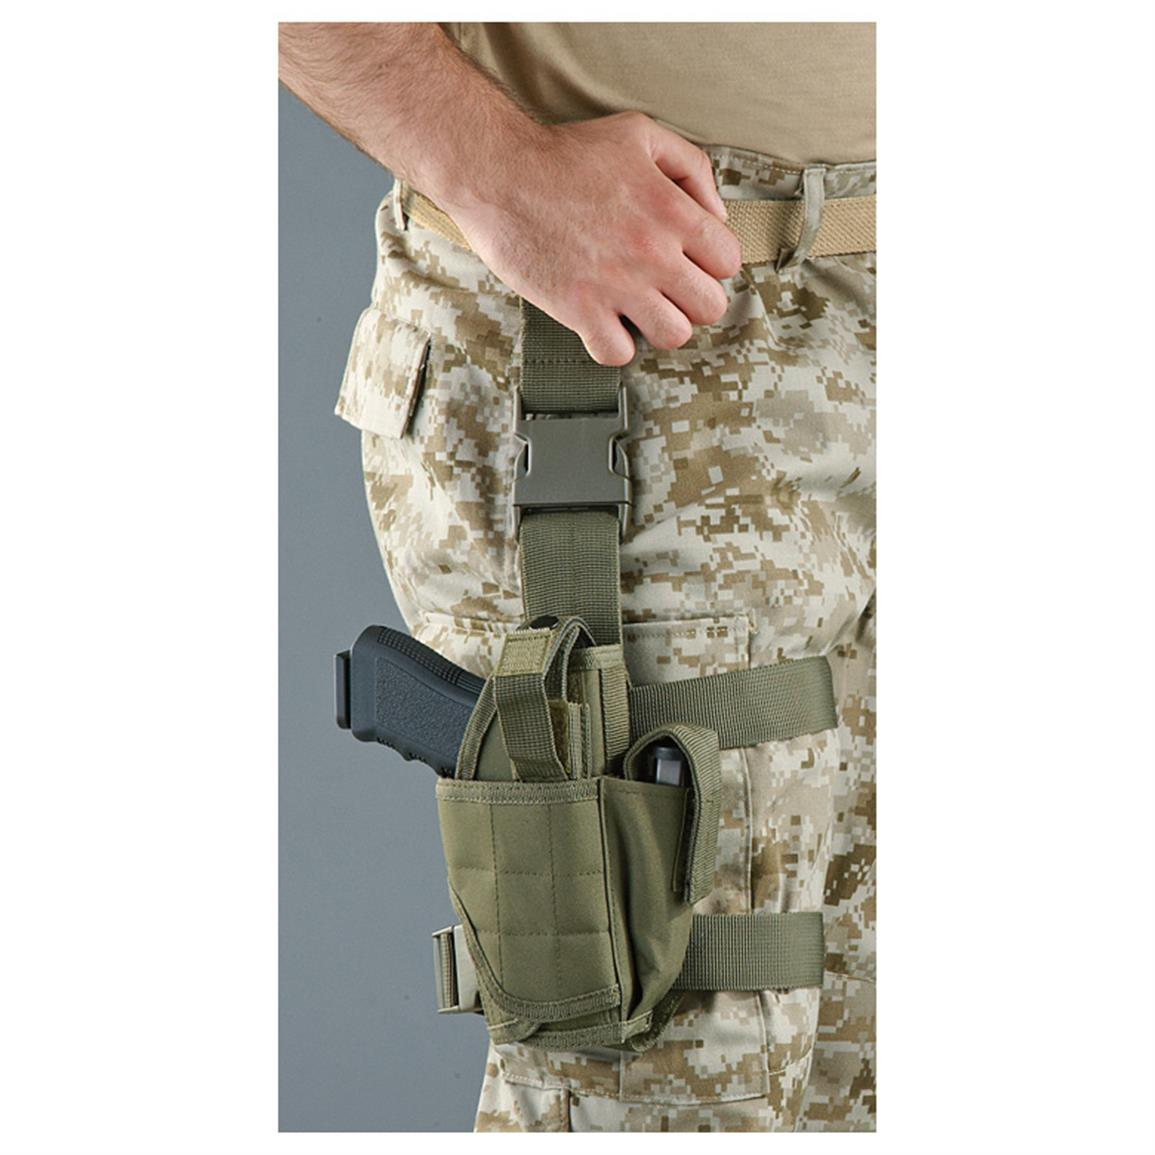 Cactus Jack Drop Leg Holster, Right Hand, Olive Drab